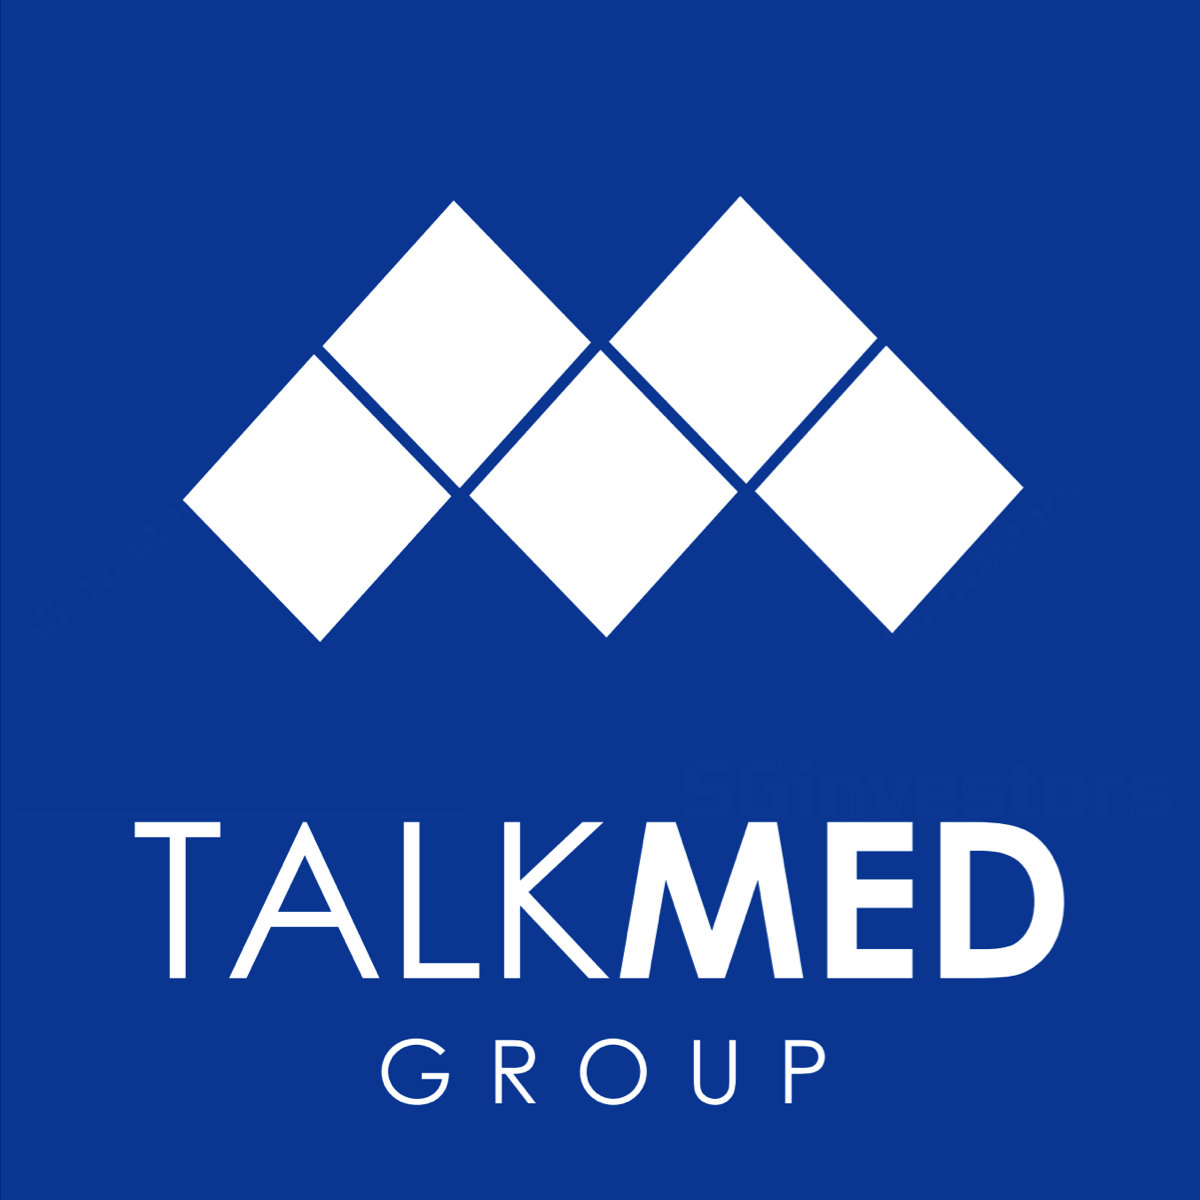 TALKMED GROUP LIMITED (SGX:5G3) | SGinvestors.io